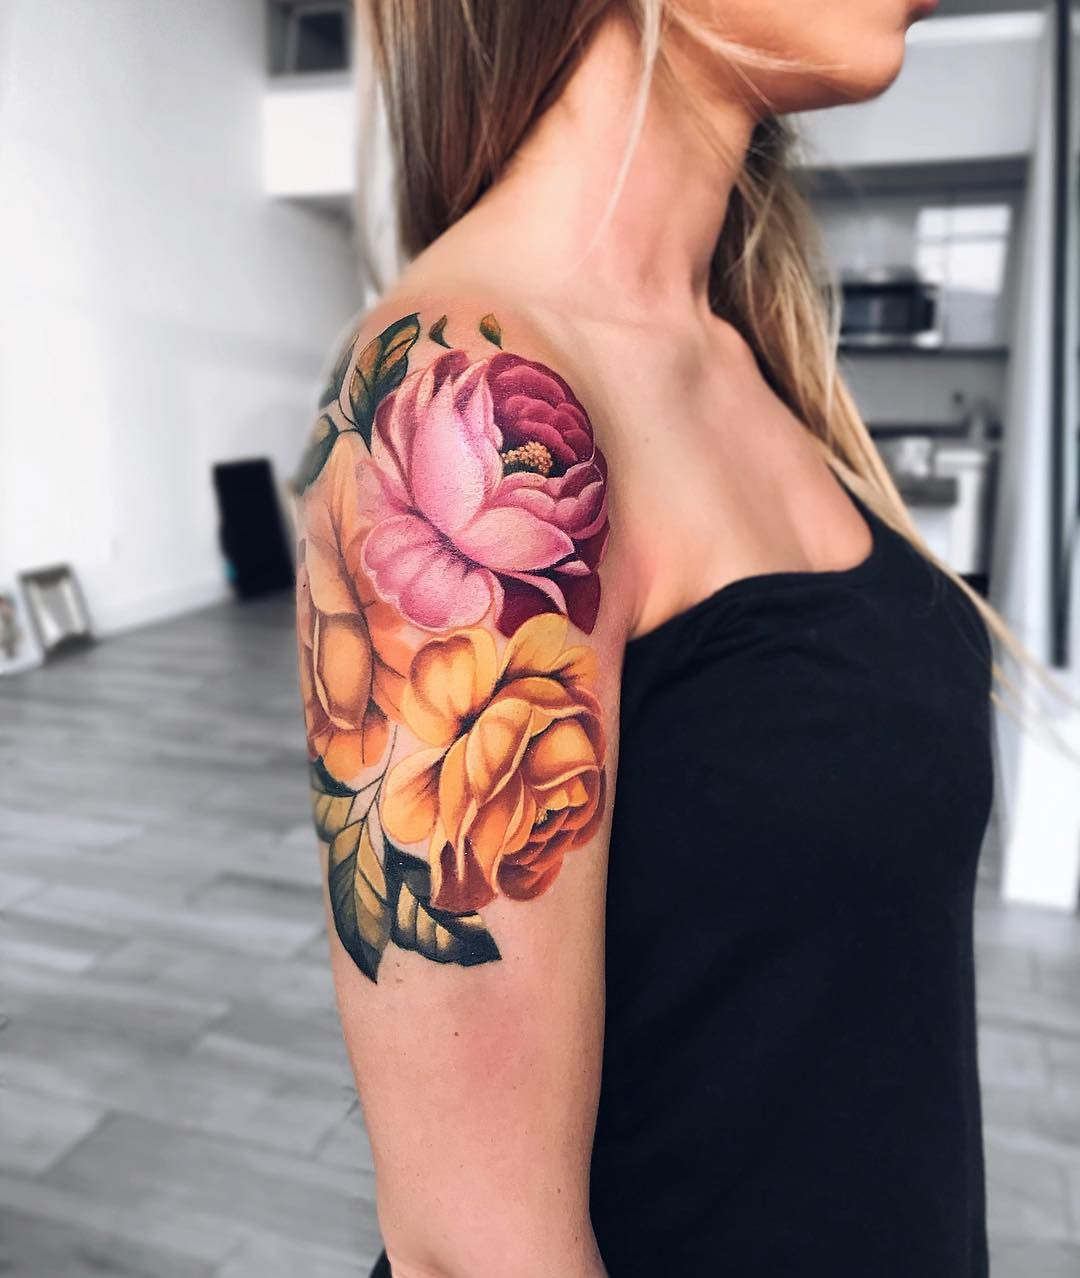 Pony Wave On Instagram Working On Russian Style Flowers Sleeve With Lovely Liza Lash Russianstyle Russianart Flo Waves Tattoo Body Art Tattoos Tattoos